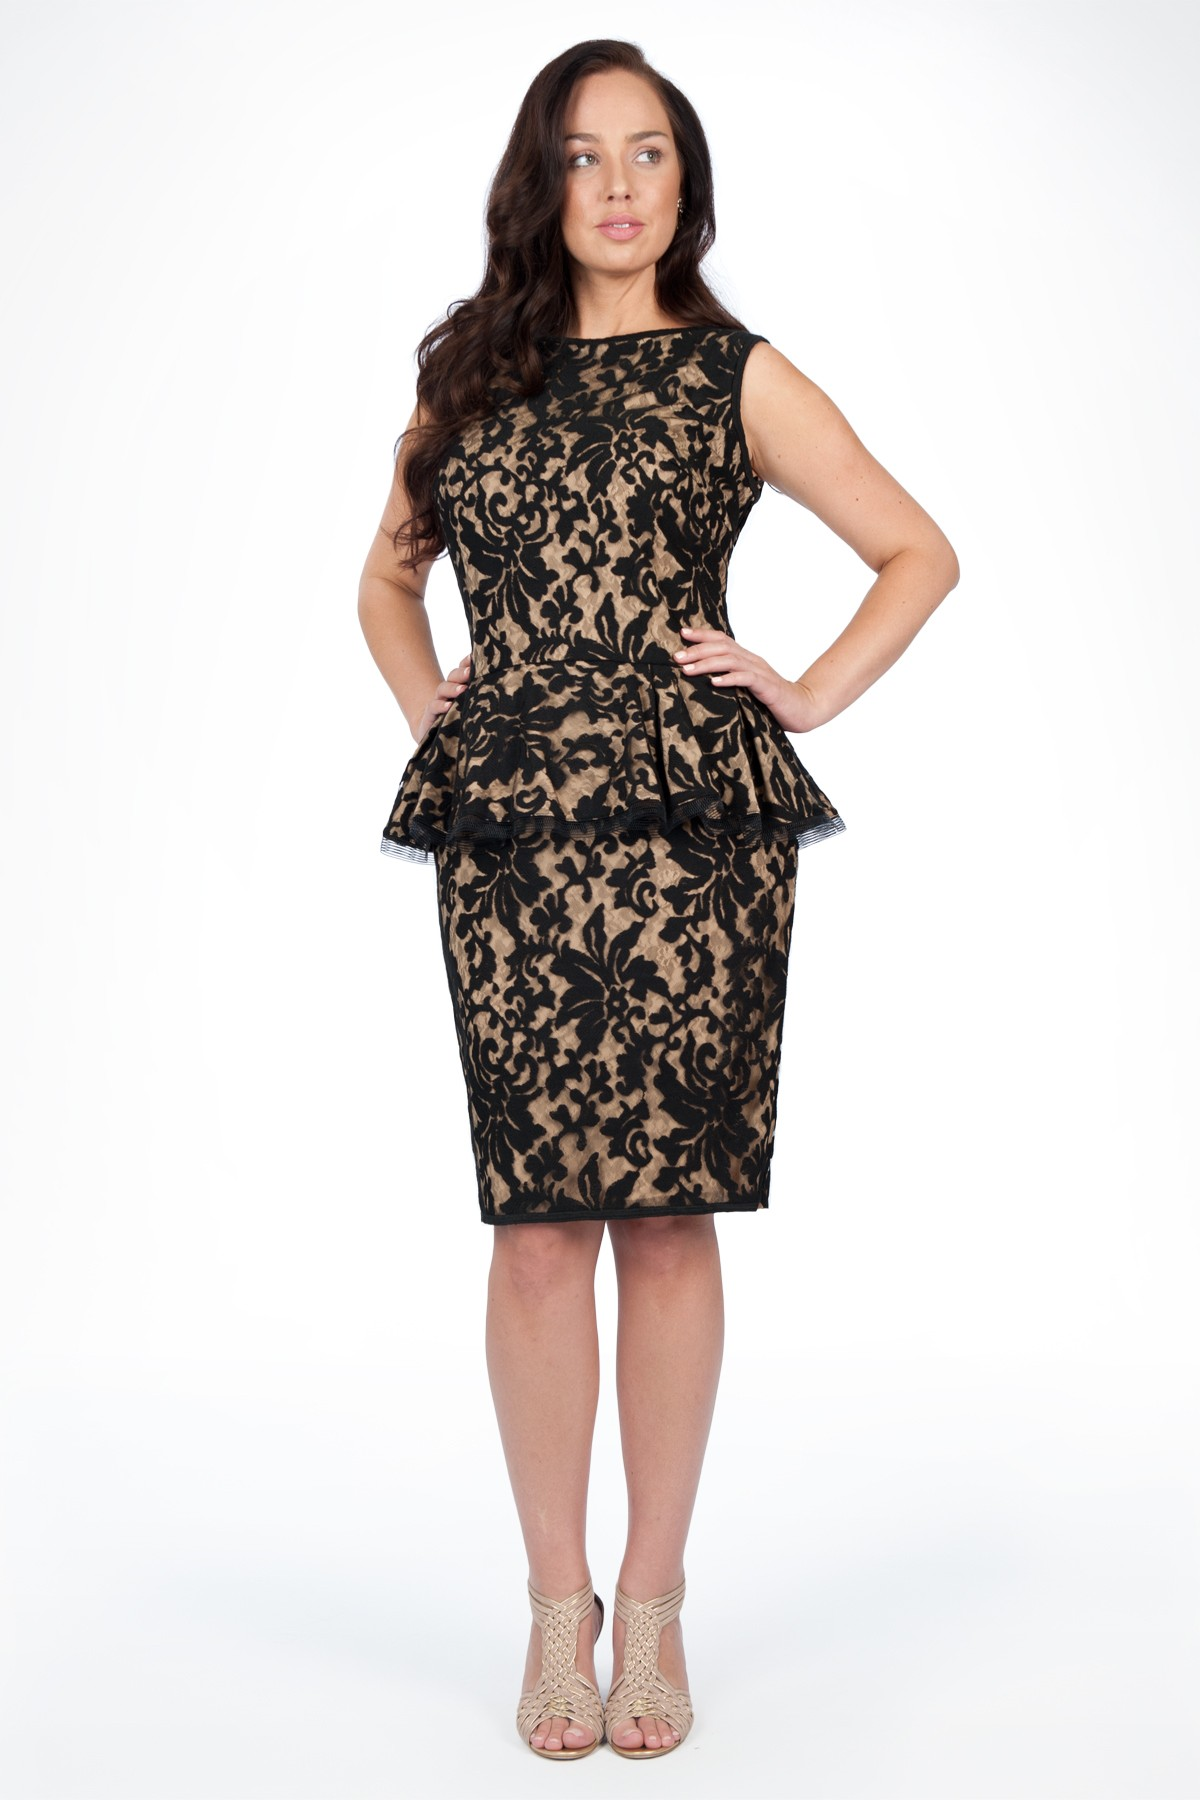 Designer Plus Size Cocktail Dresses - Evening Wear